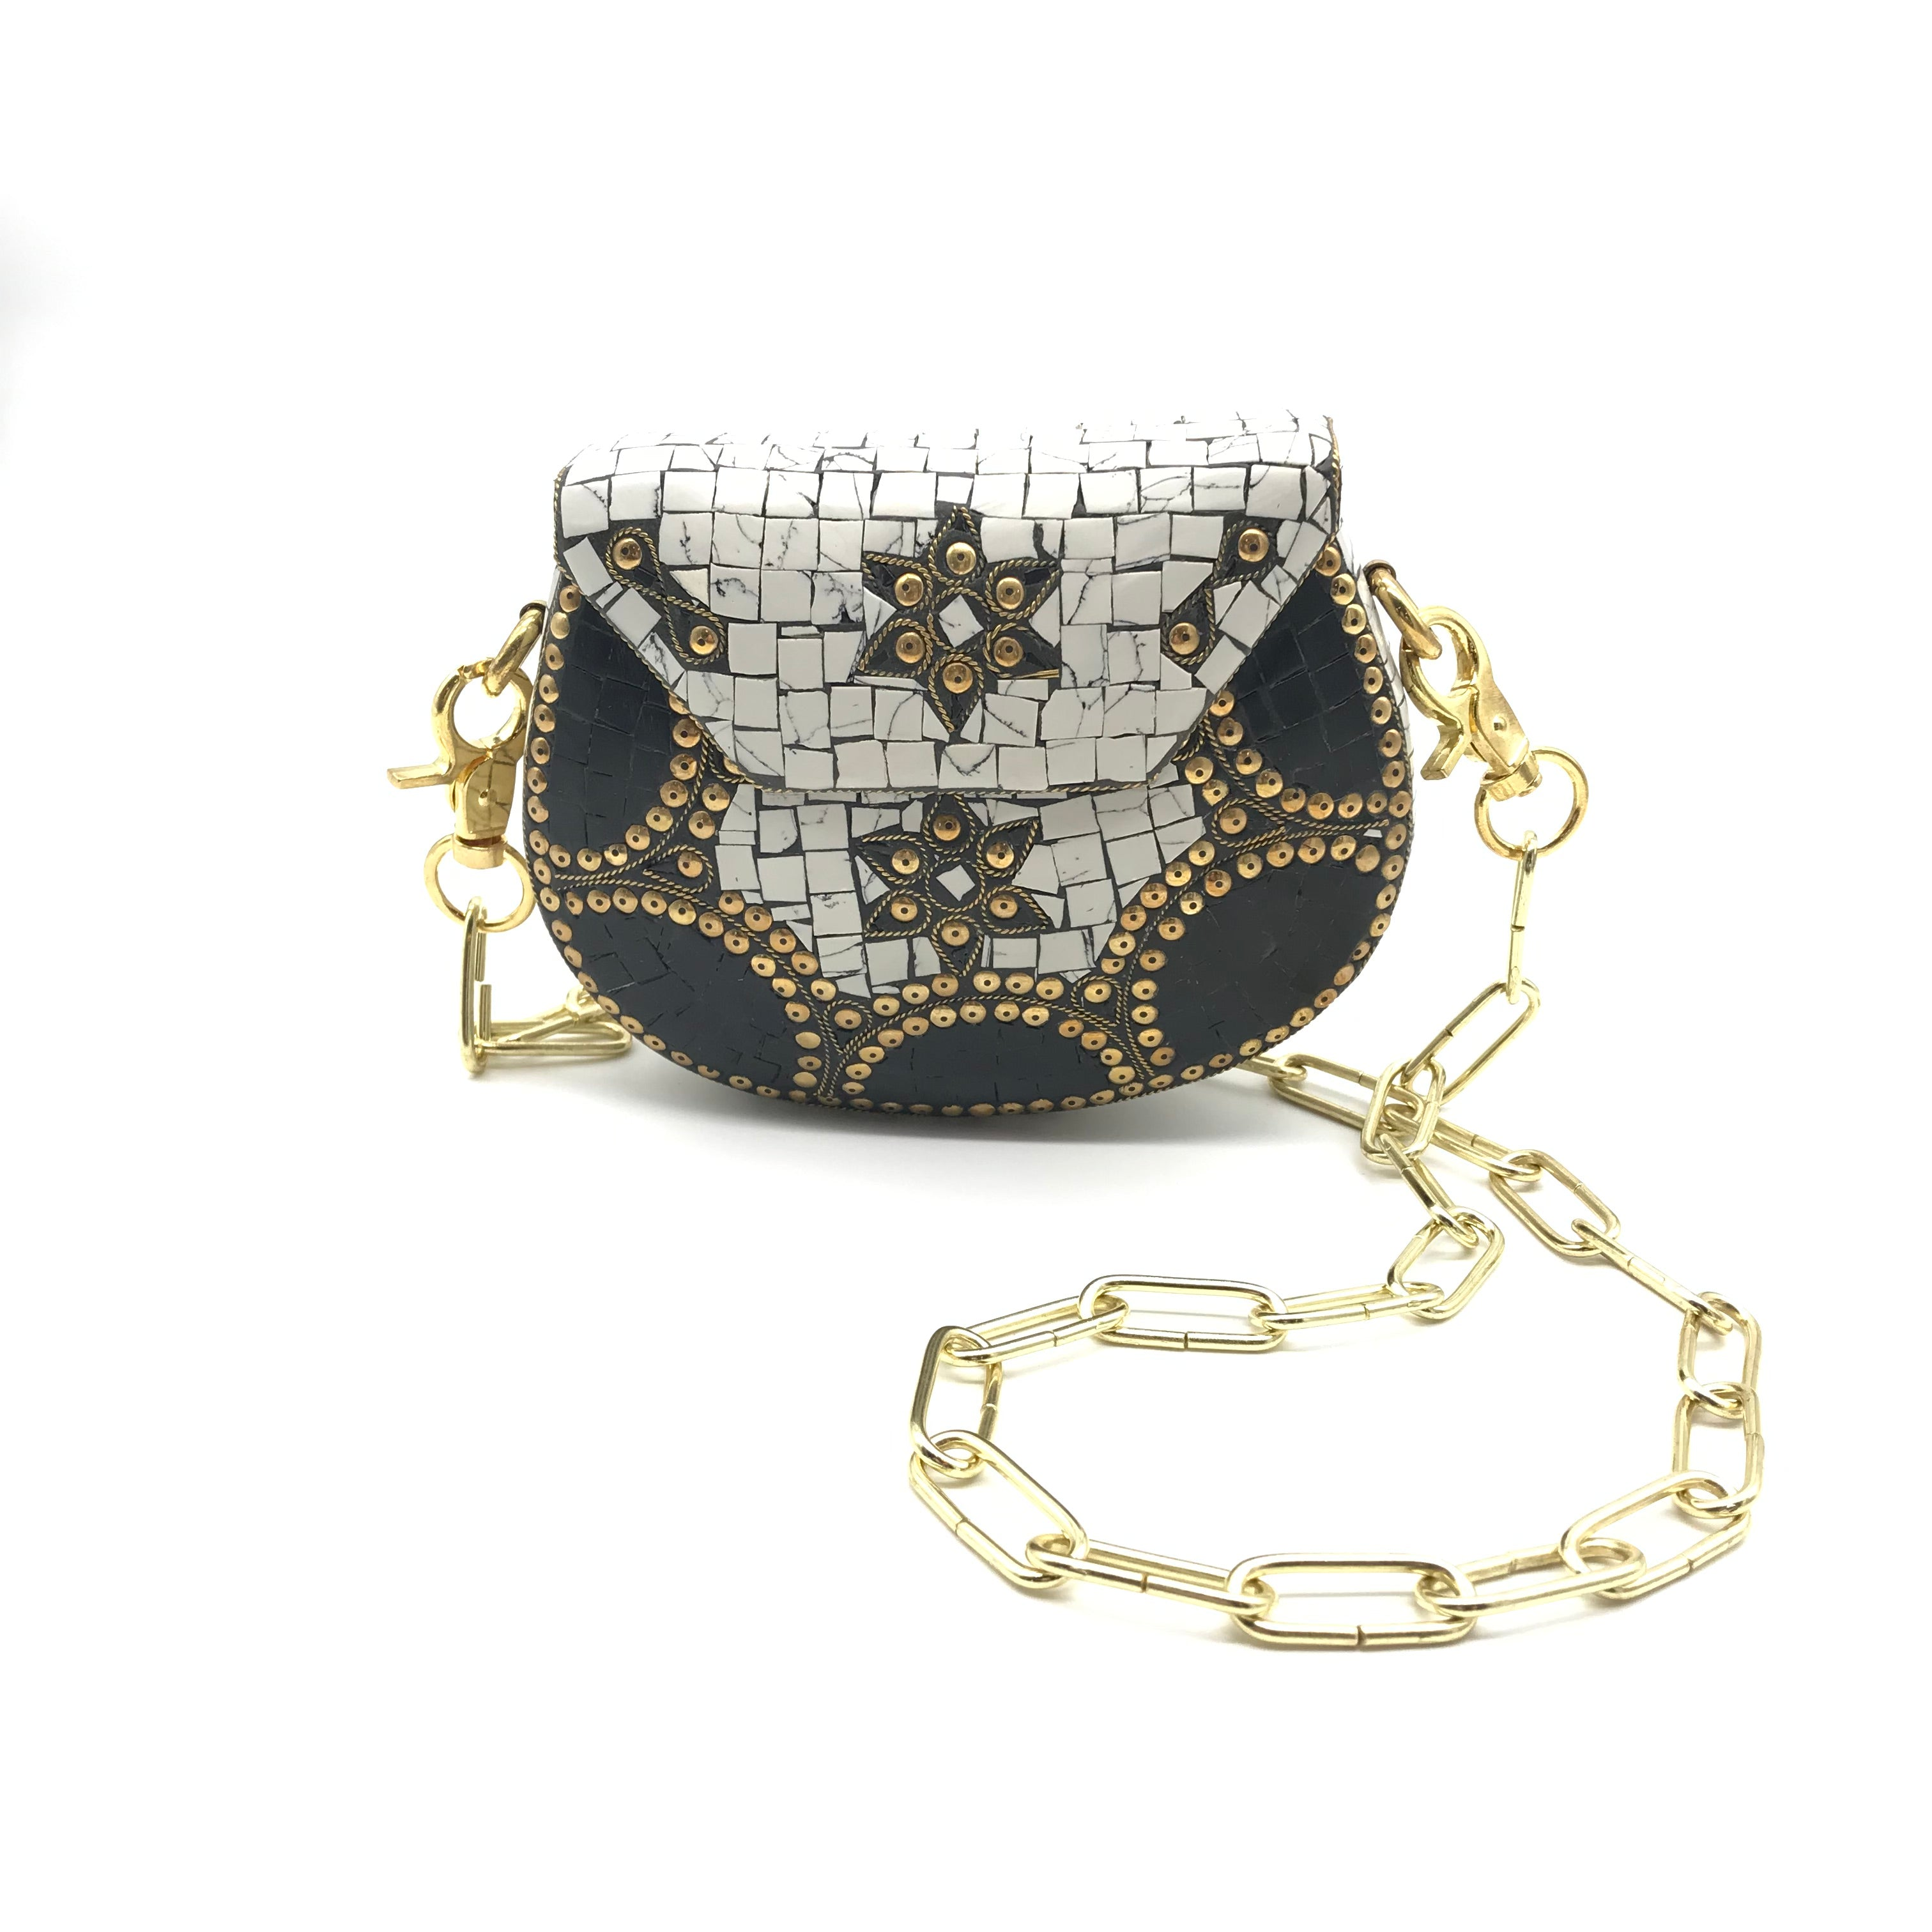 Alakuum Brass & Mosaic Cross Body Bag